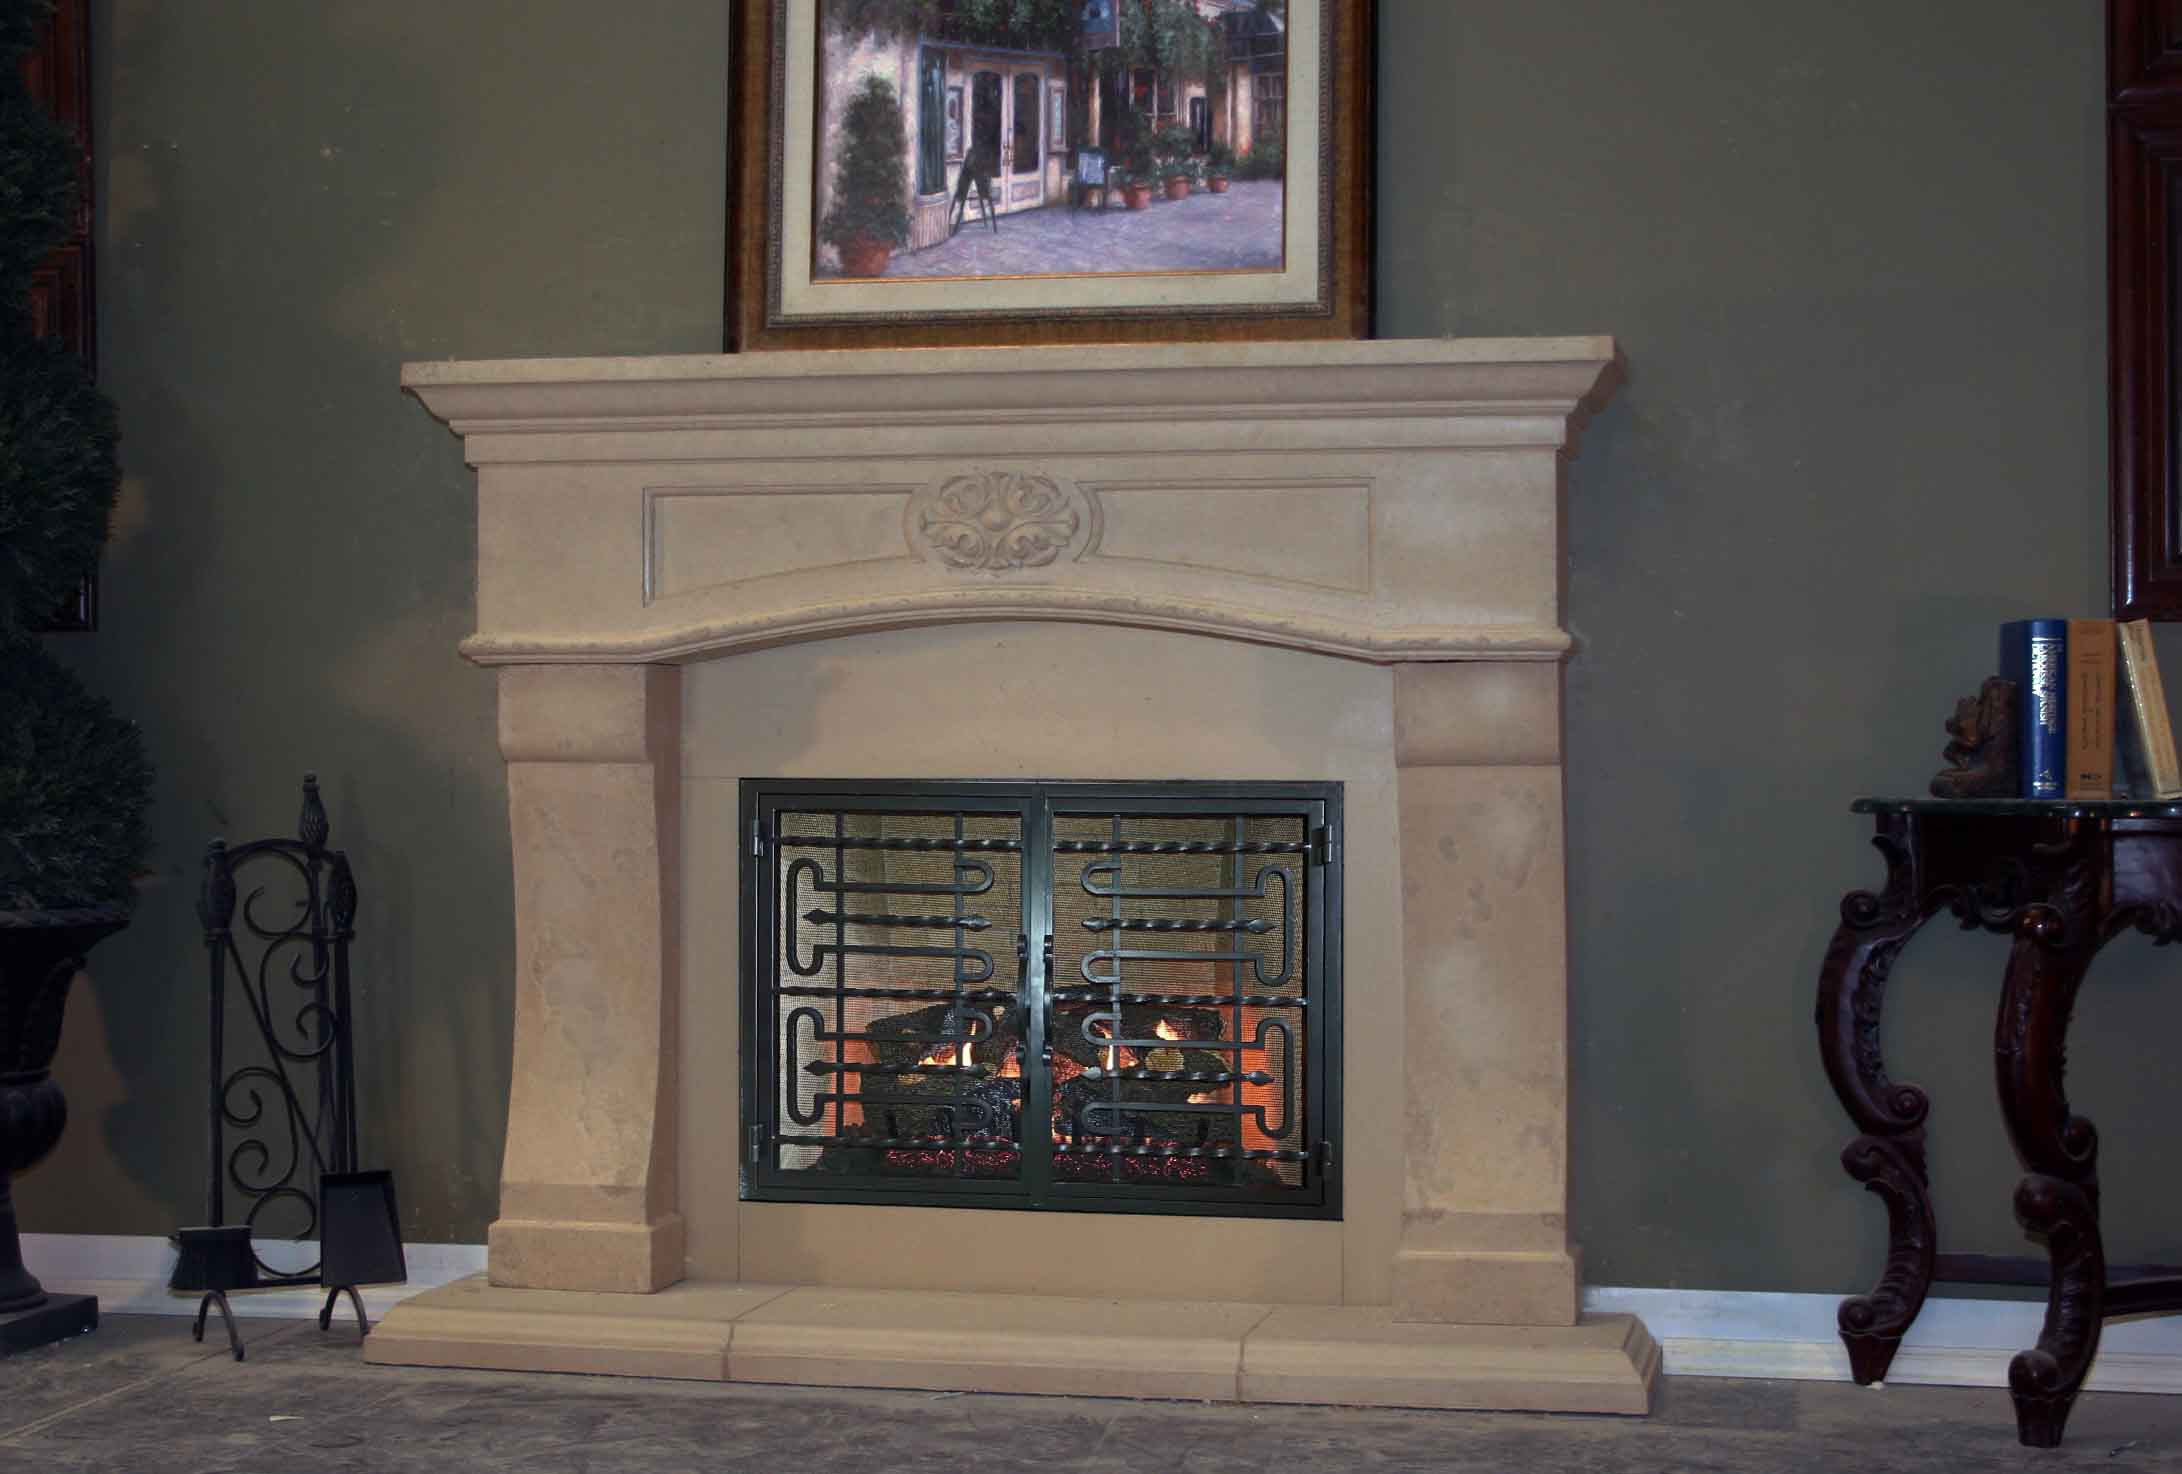 Mt233 Fireplace Mantels Fireplace Surrounds Iron Fireplace Doors And Screens In San Diego